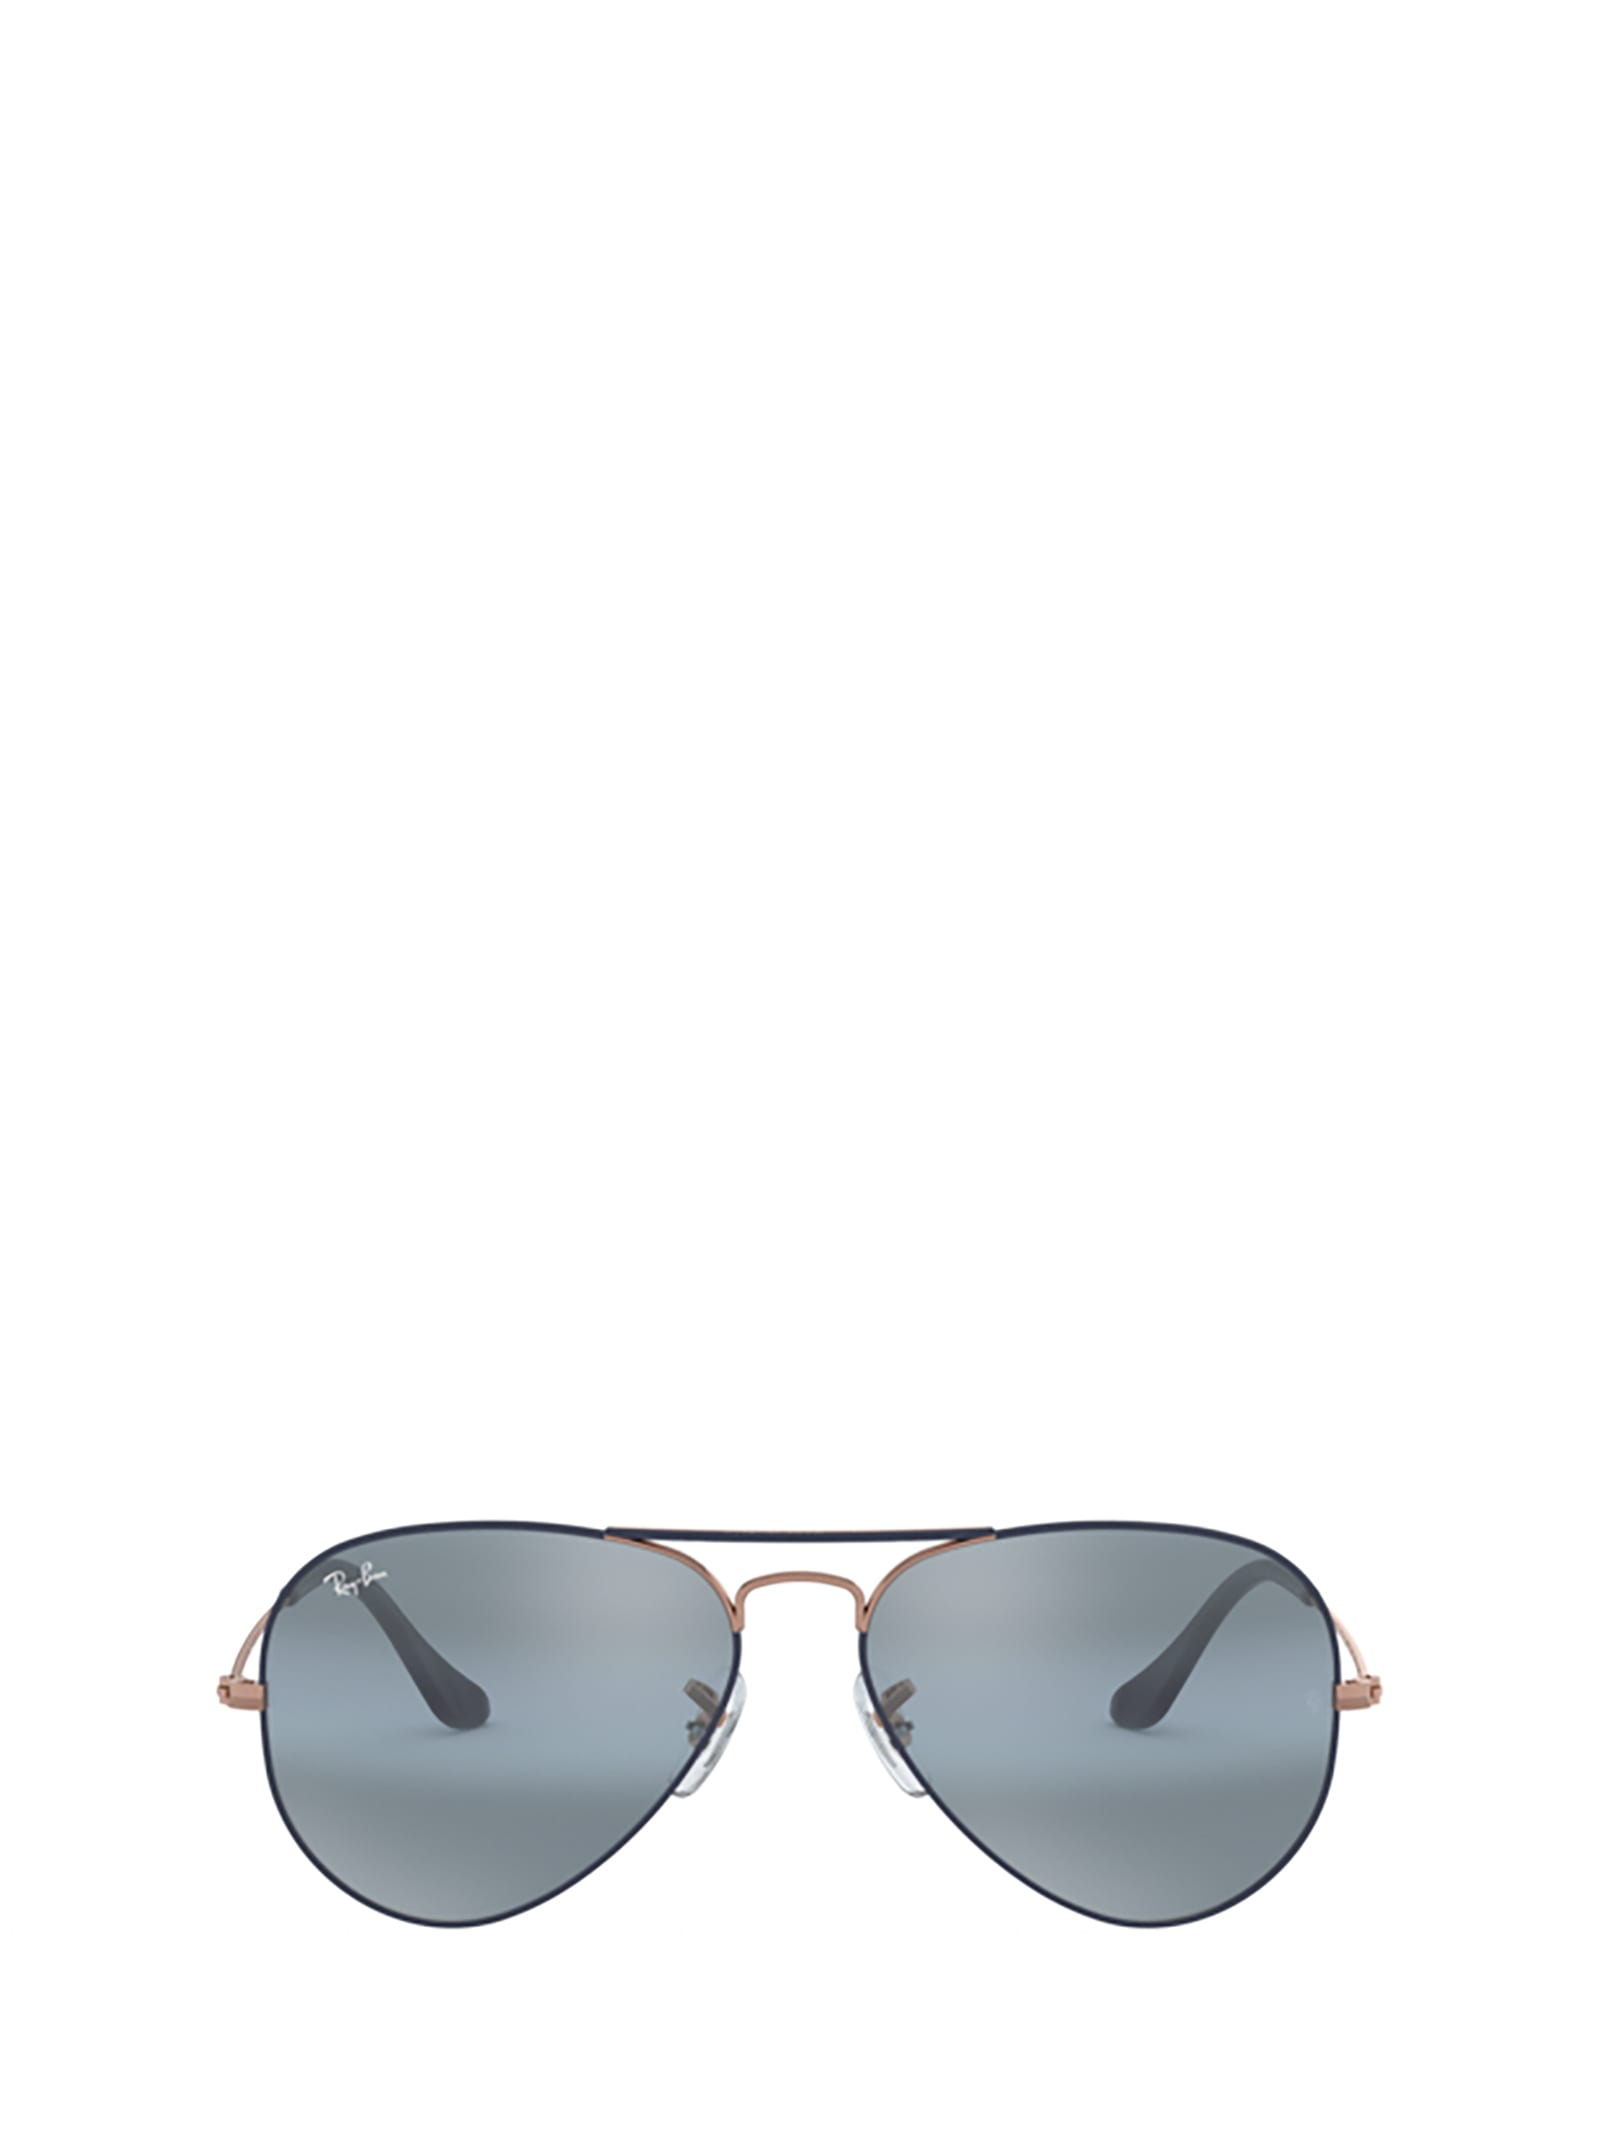 Ray-Ban Ray-ban Rb3025 Matte Dark Blue On Copper Sunglasses